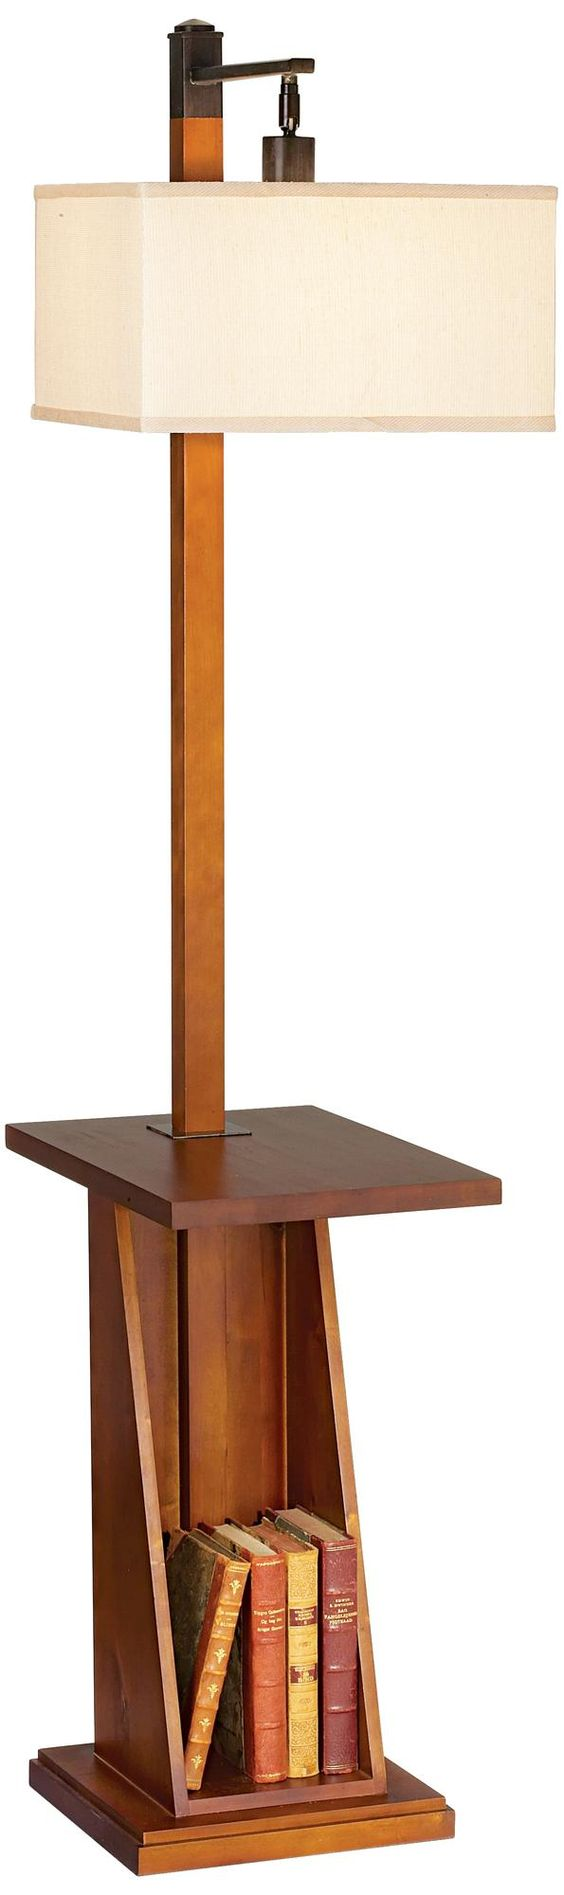 Astor place walnut tray and shelf floor lamp lampsplus Floor lamp with shelves